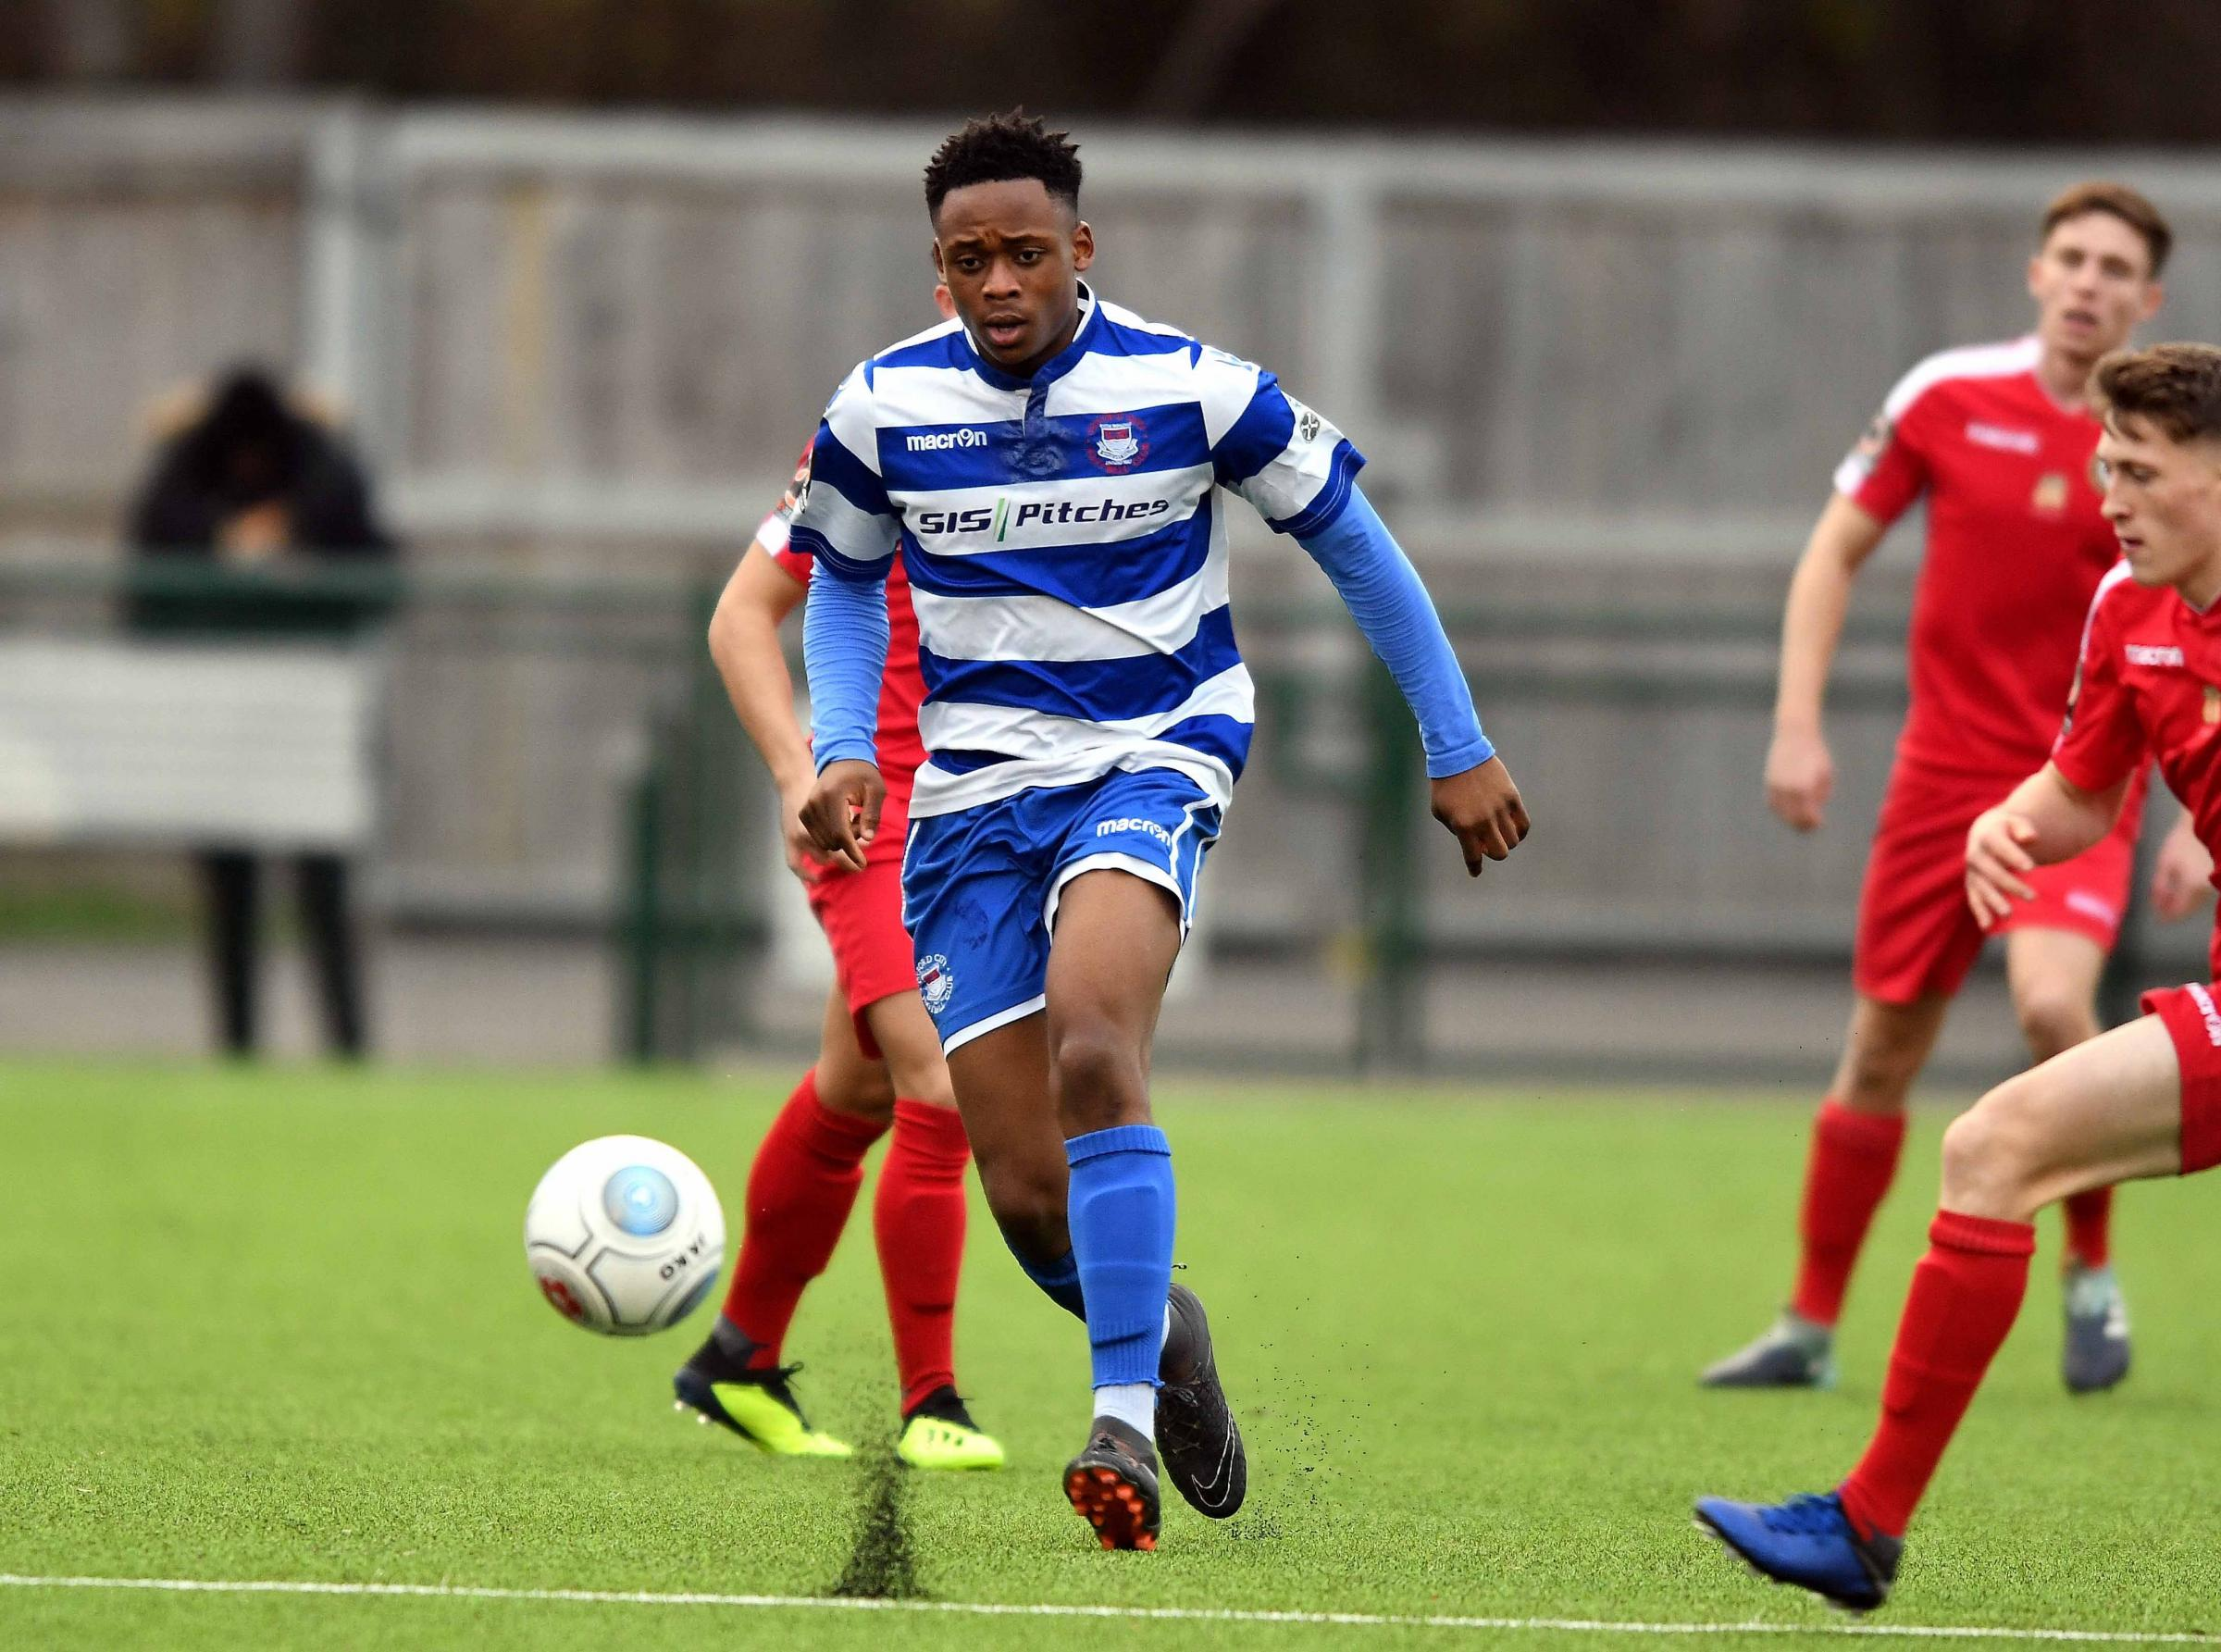 Udoka Godwin-Malife has left Oxford City for Forest Green Rovers